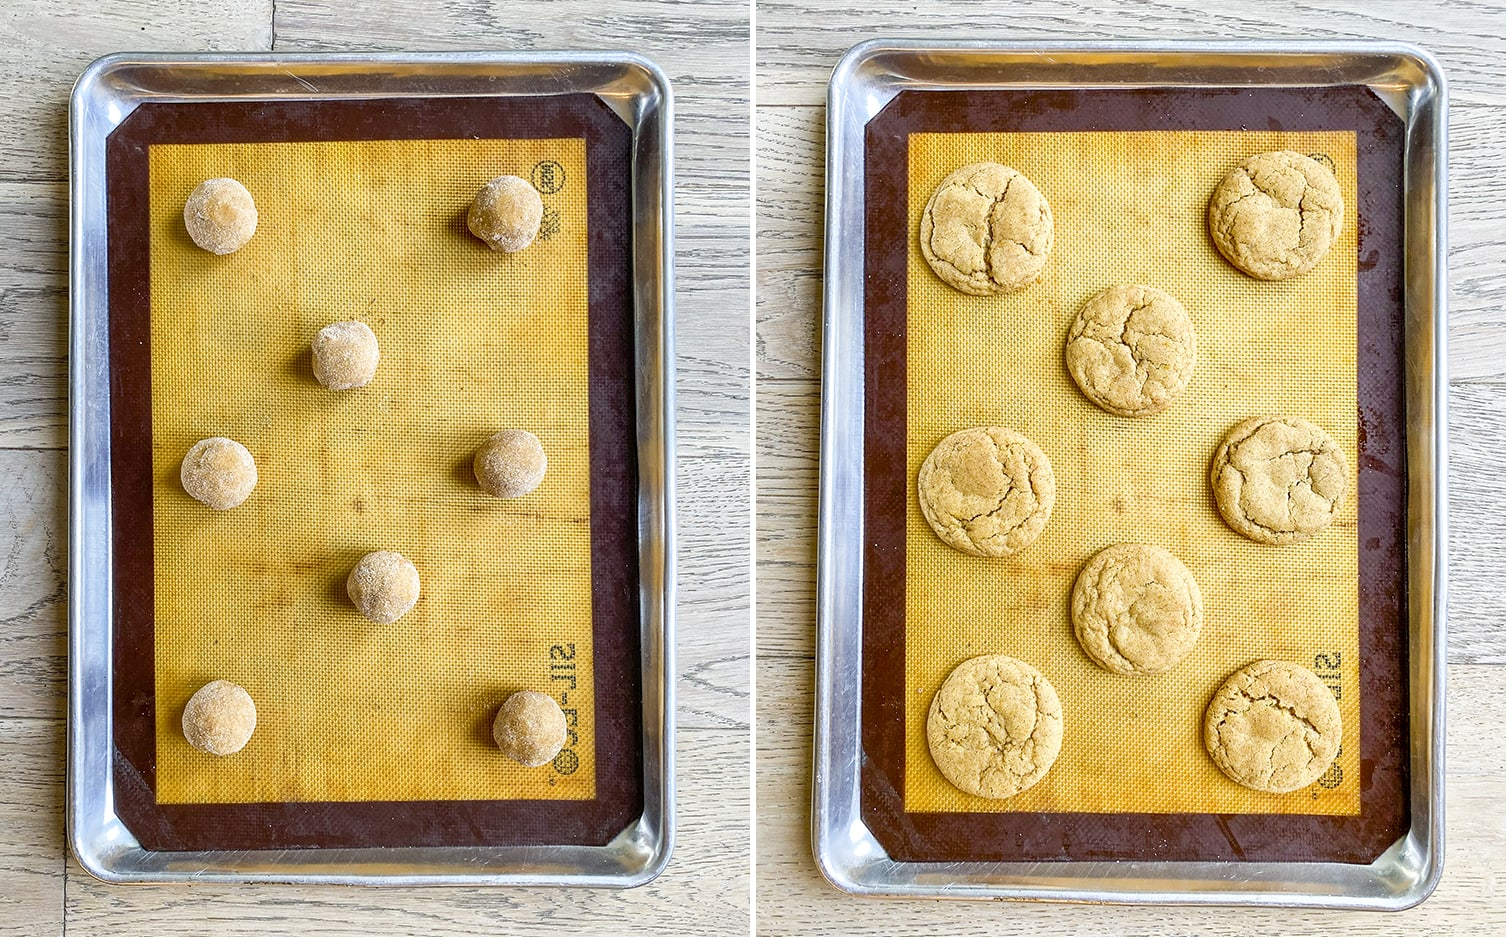 A shot of pumpkin snickerdoodle cookie dough balls on a cookie sheet. Then another of the cookies after they are cooked, on the same pan.